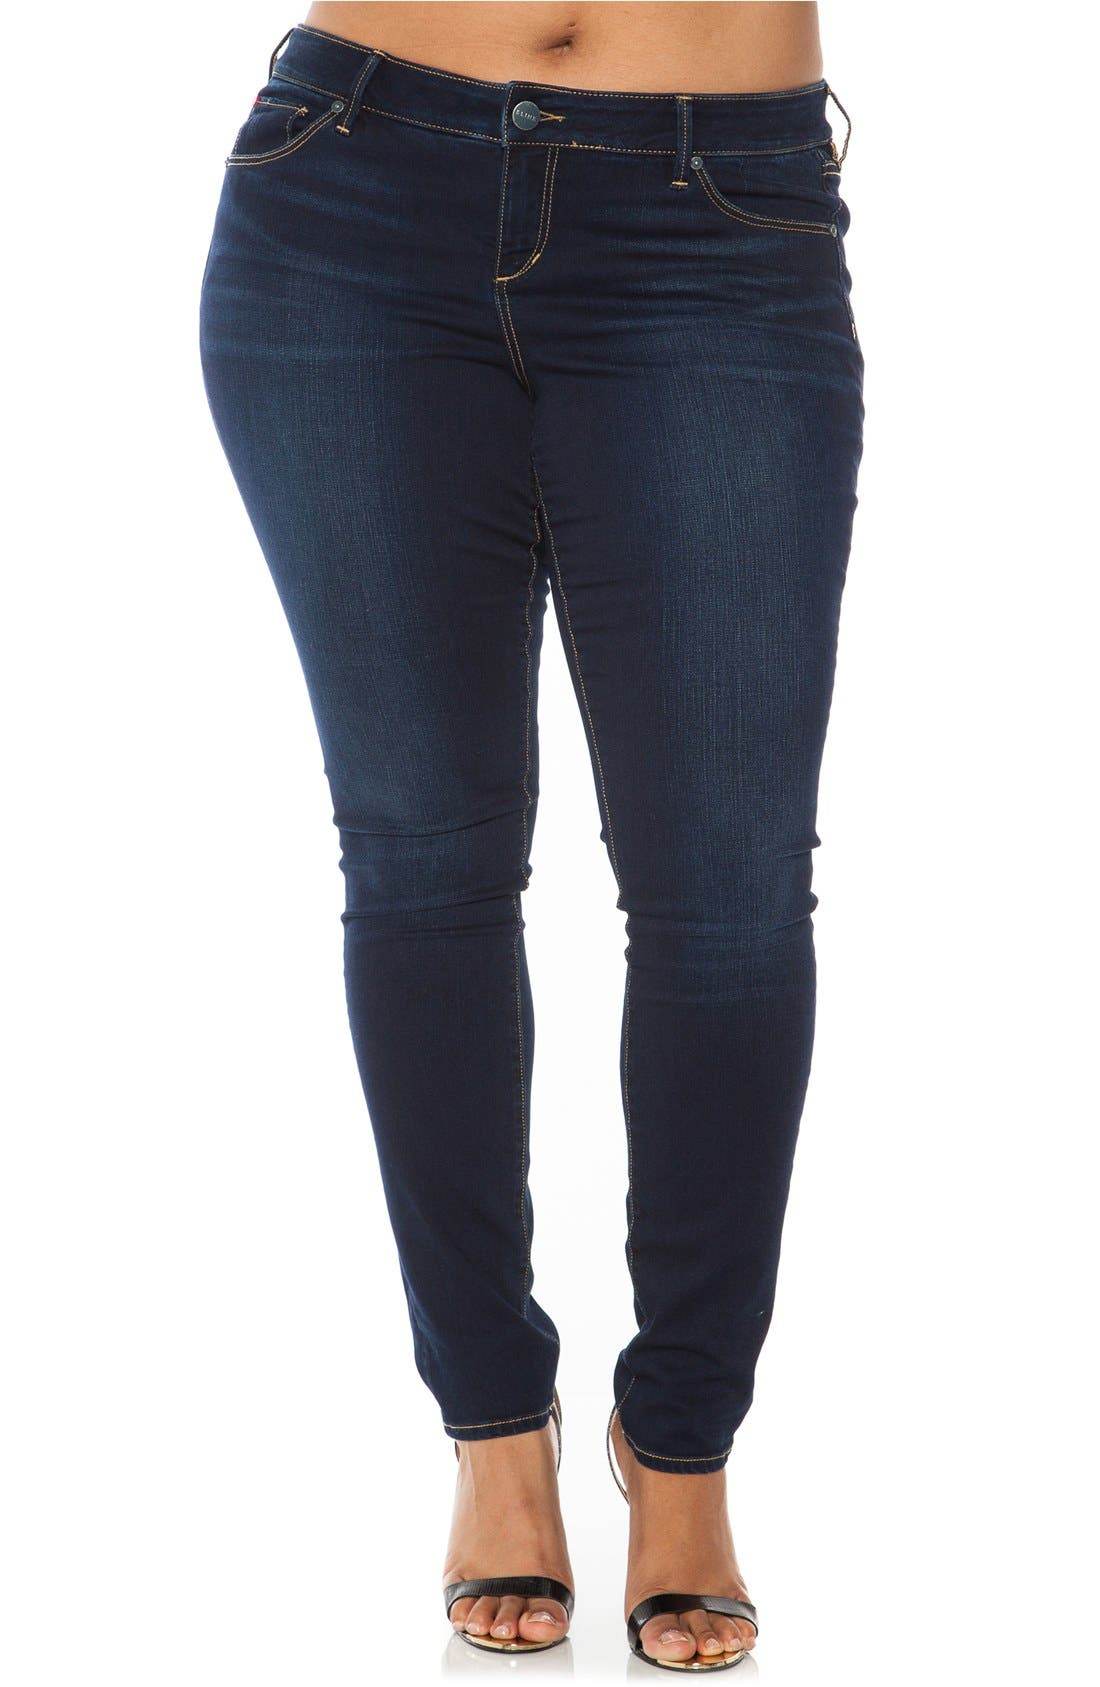 SLINK Jeans 'The Skinny' Stretch Denim Jeans (Amber) (Plus Size)